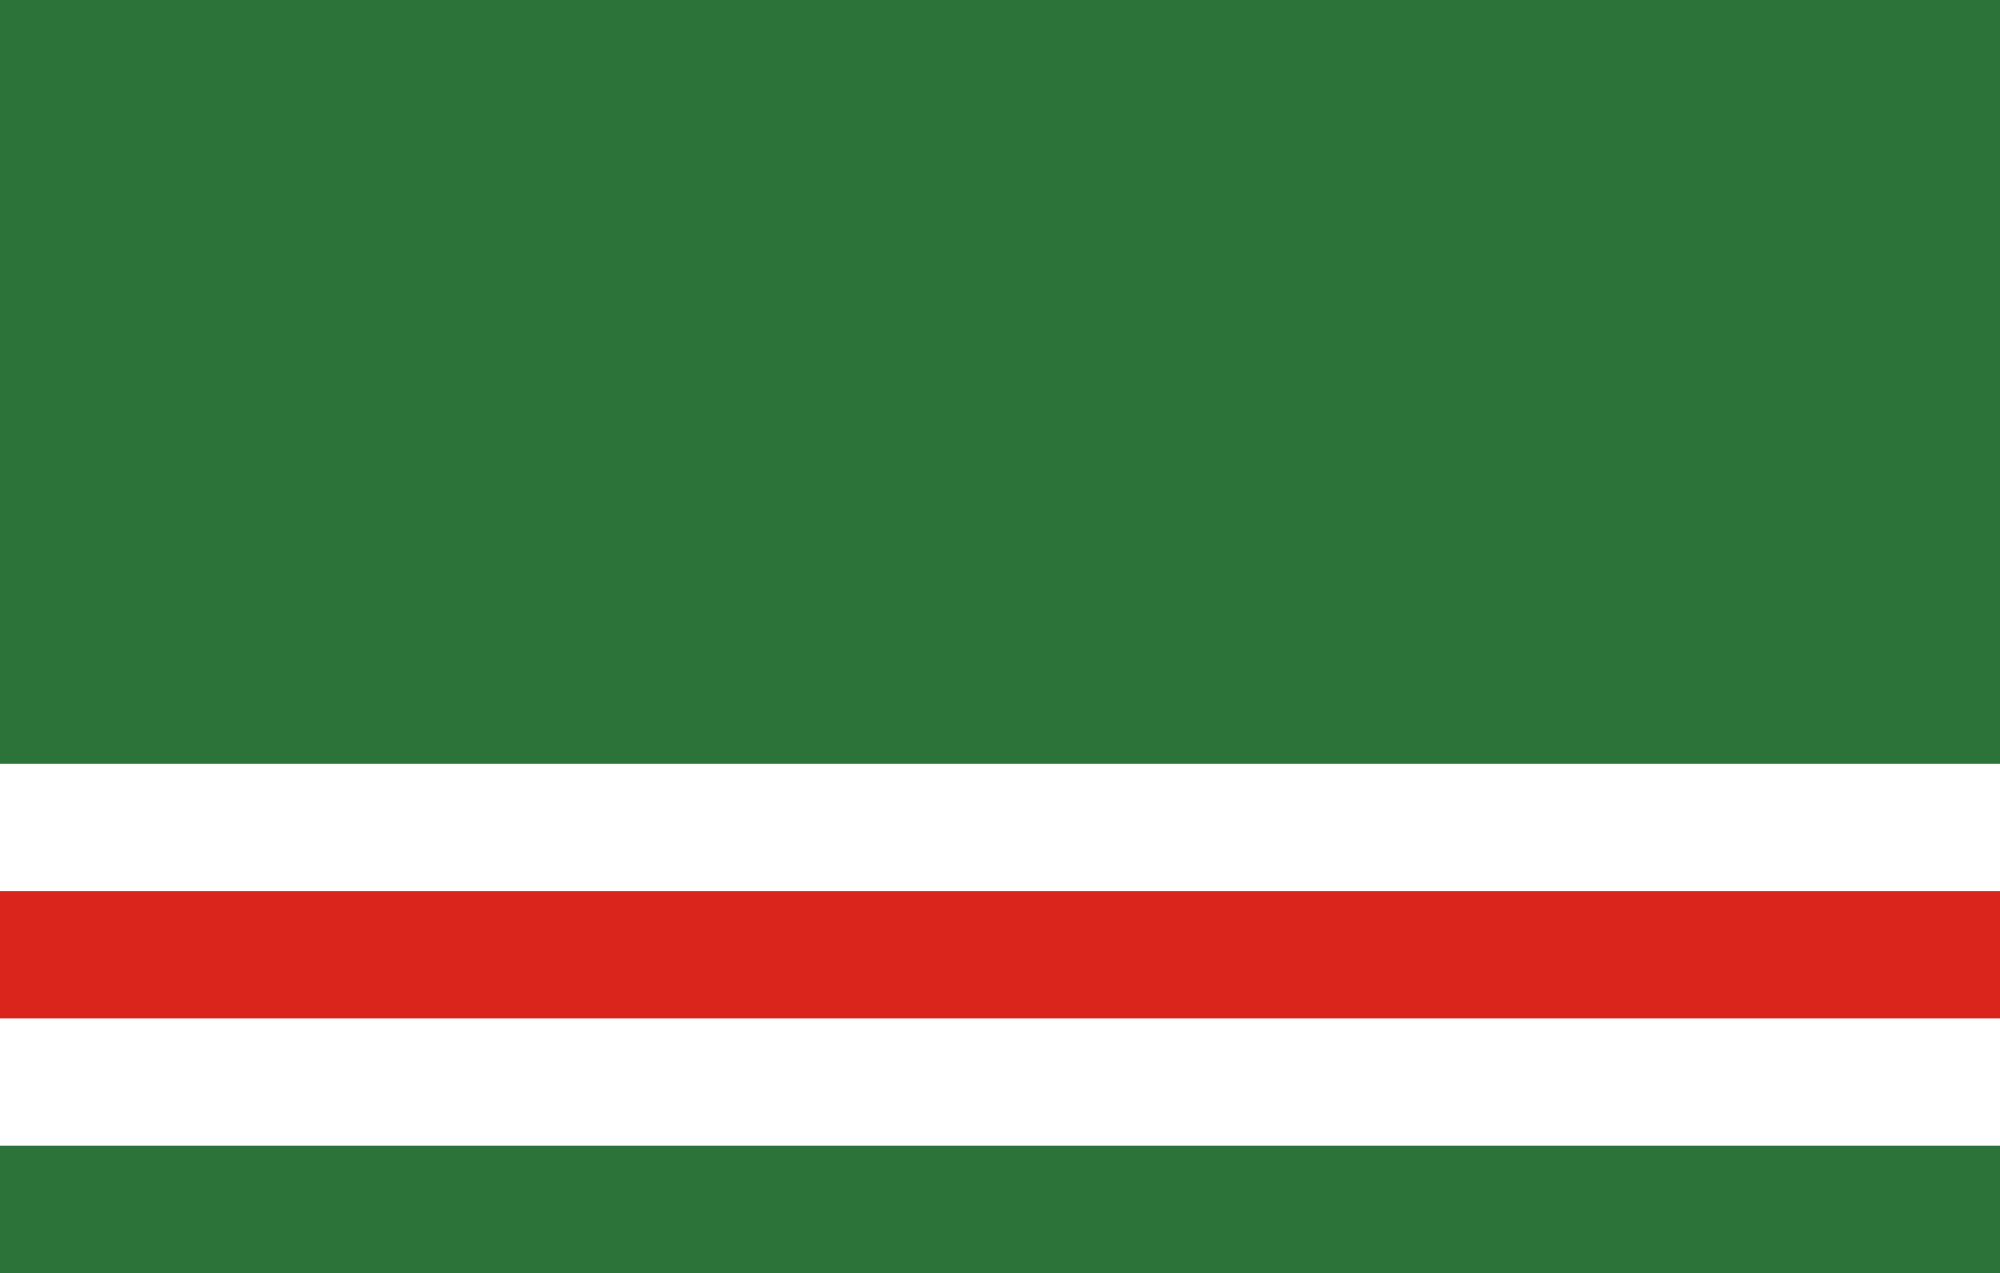 Flag Of Chechnya svg #13, Download drawings